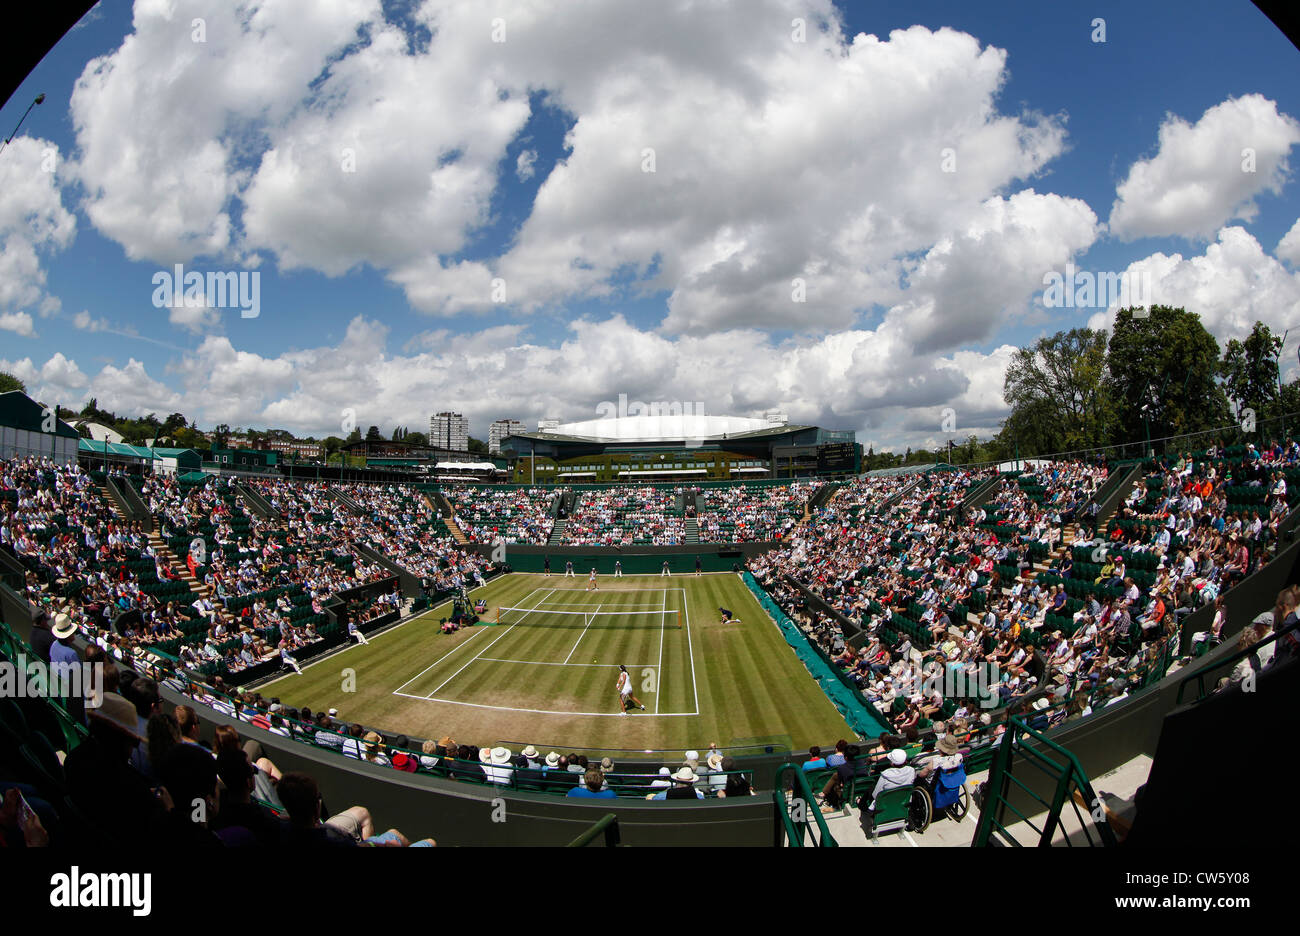 Wideangle view from above of Show Court 2 at Wimbledon - Stock Image